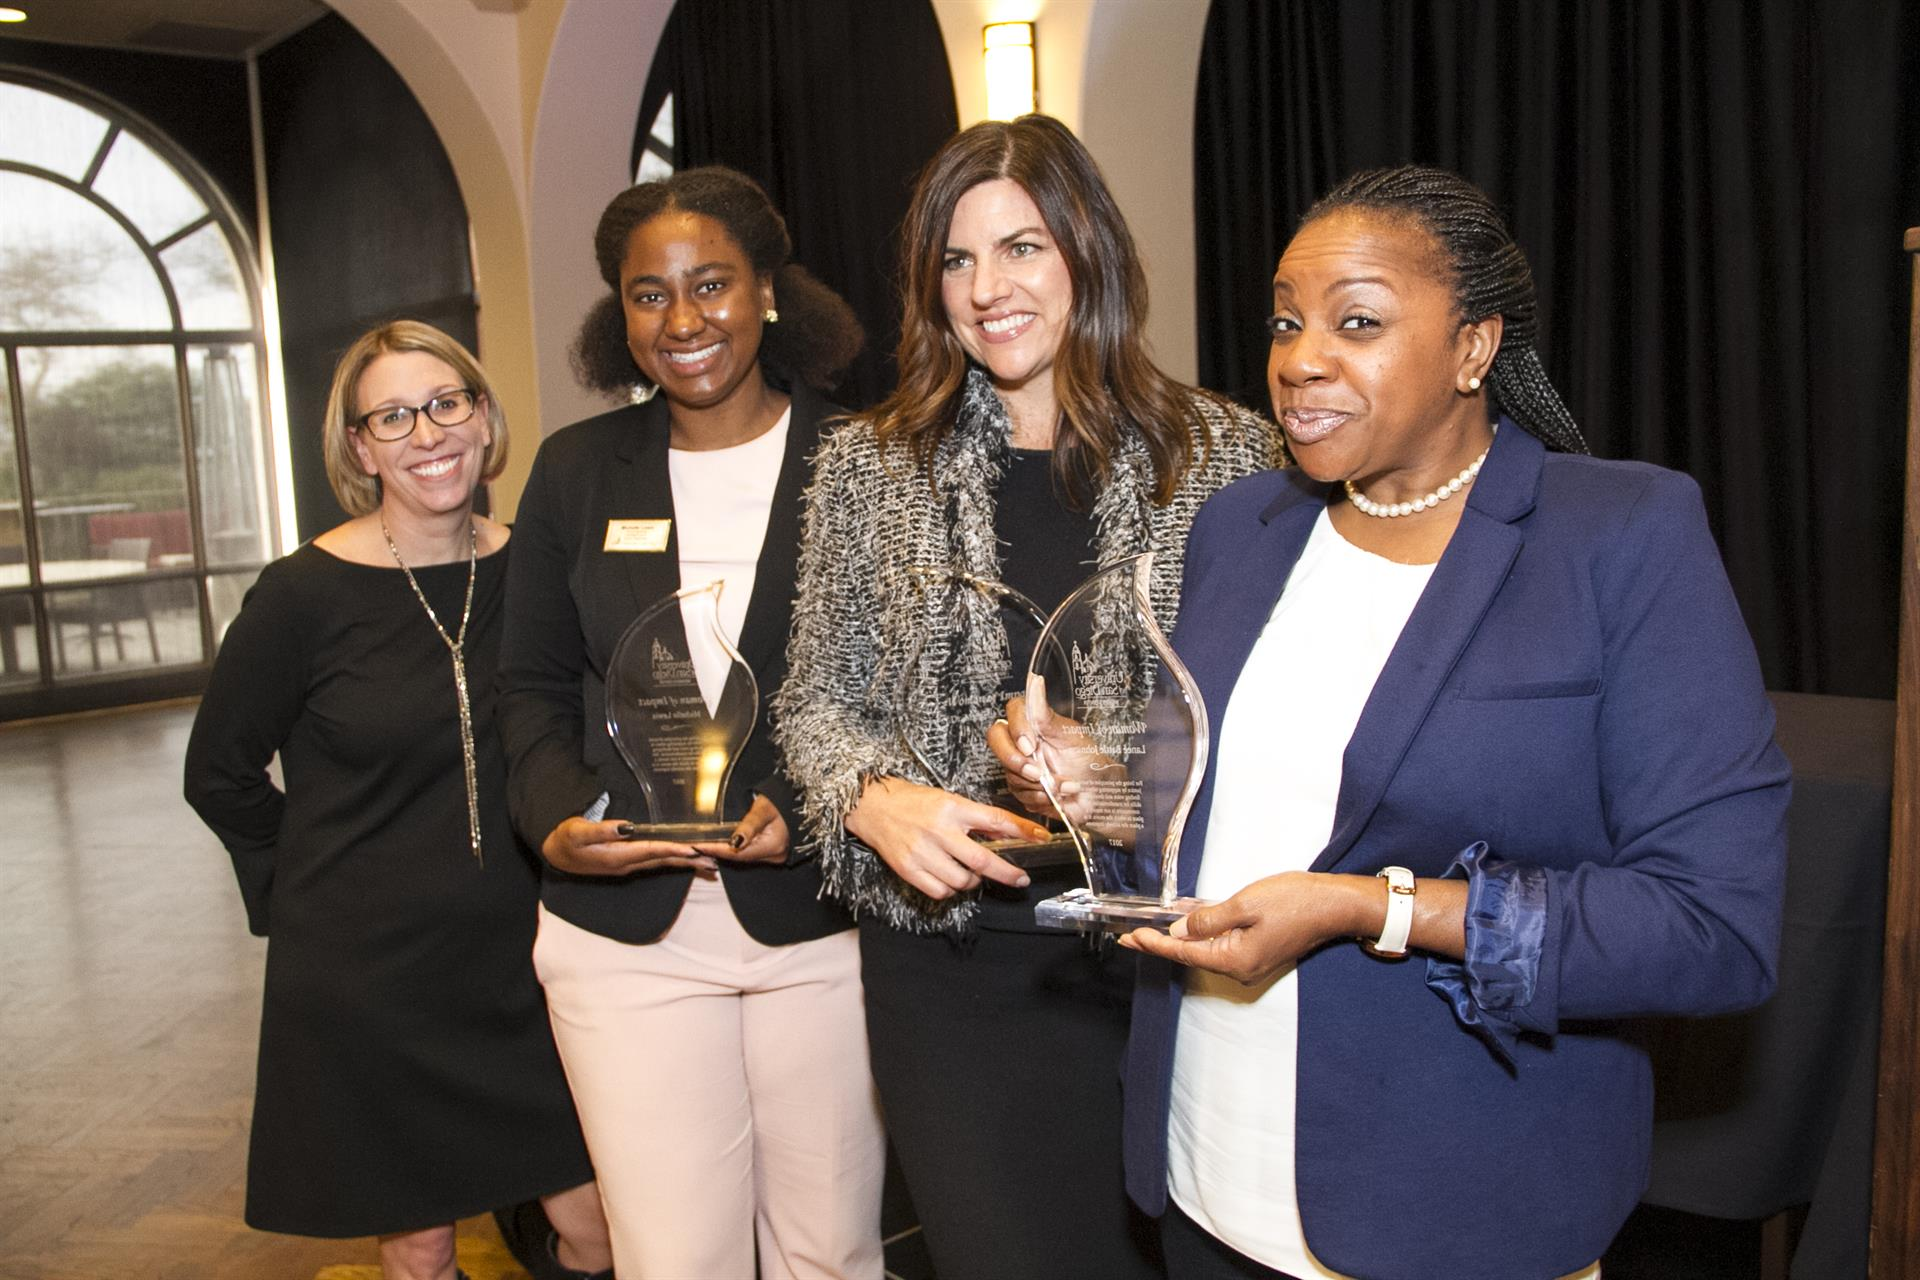 Women's Center Director Erin Lovette-Colyer with three 2017 Women of Impact Award winners.